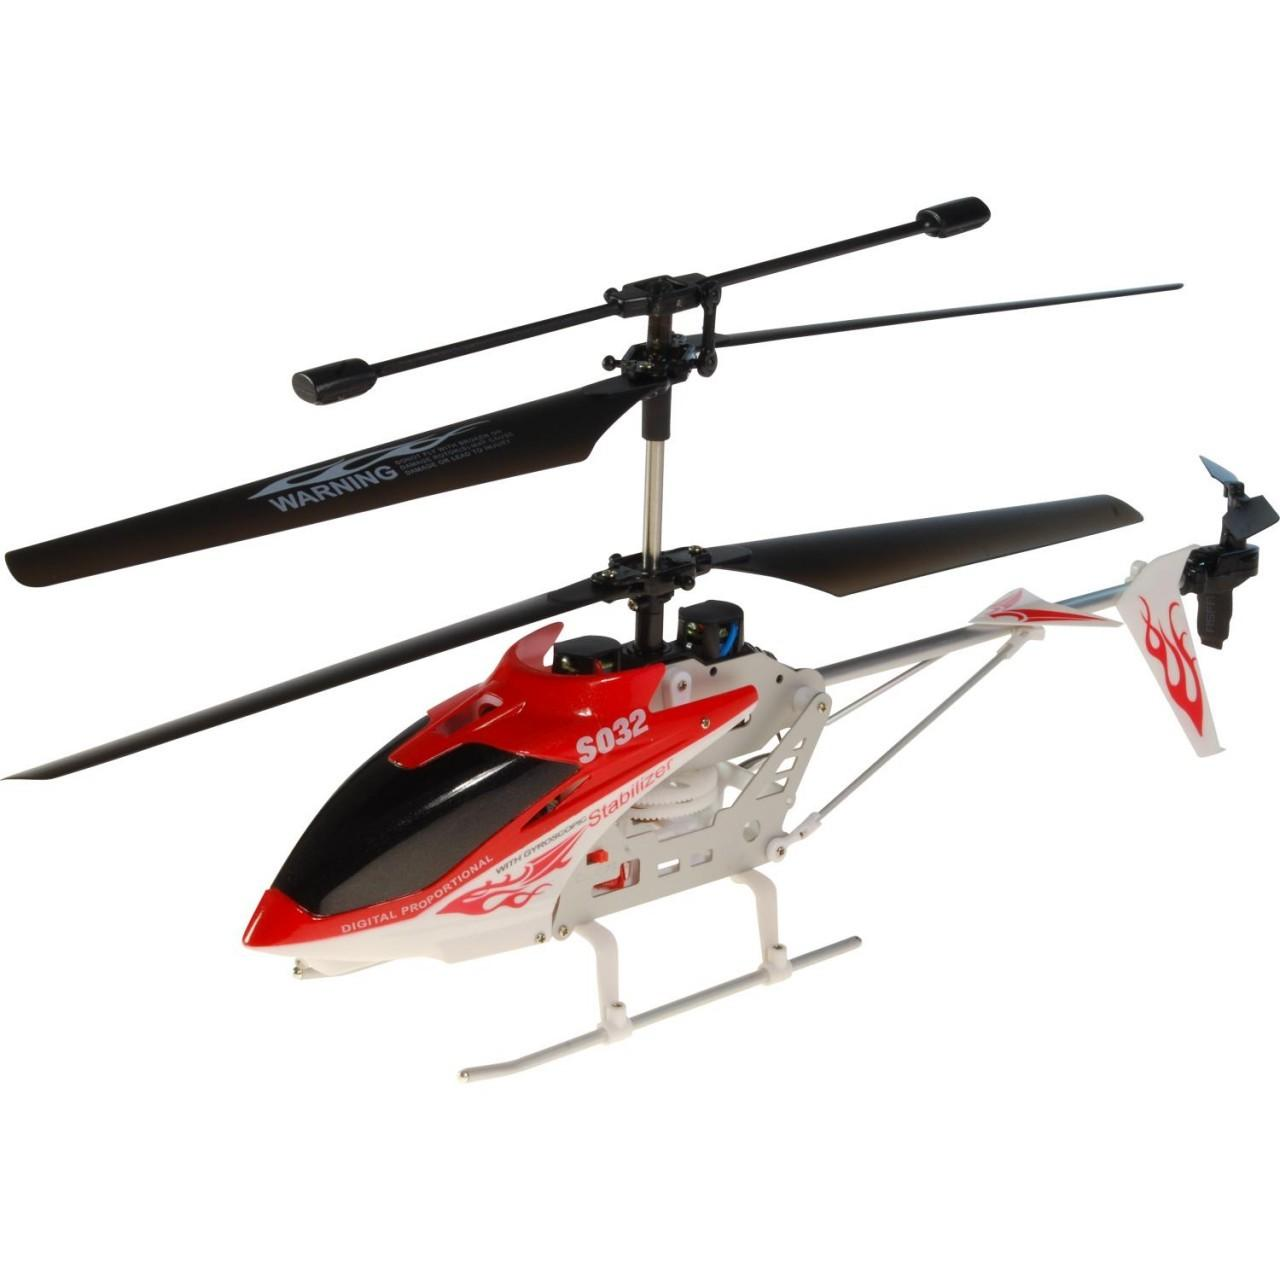 Buy cheap Red, Blue 4 channel Small RC Helicopter with Gyroscope Single Blade 2.4G Two Speed ES-9018 from wholesalers